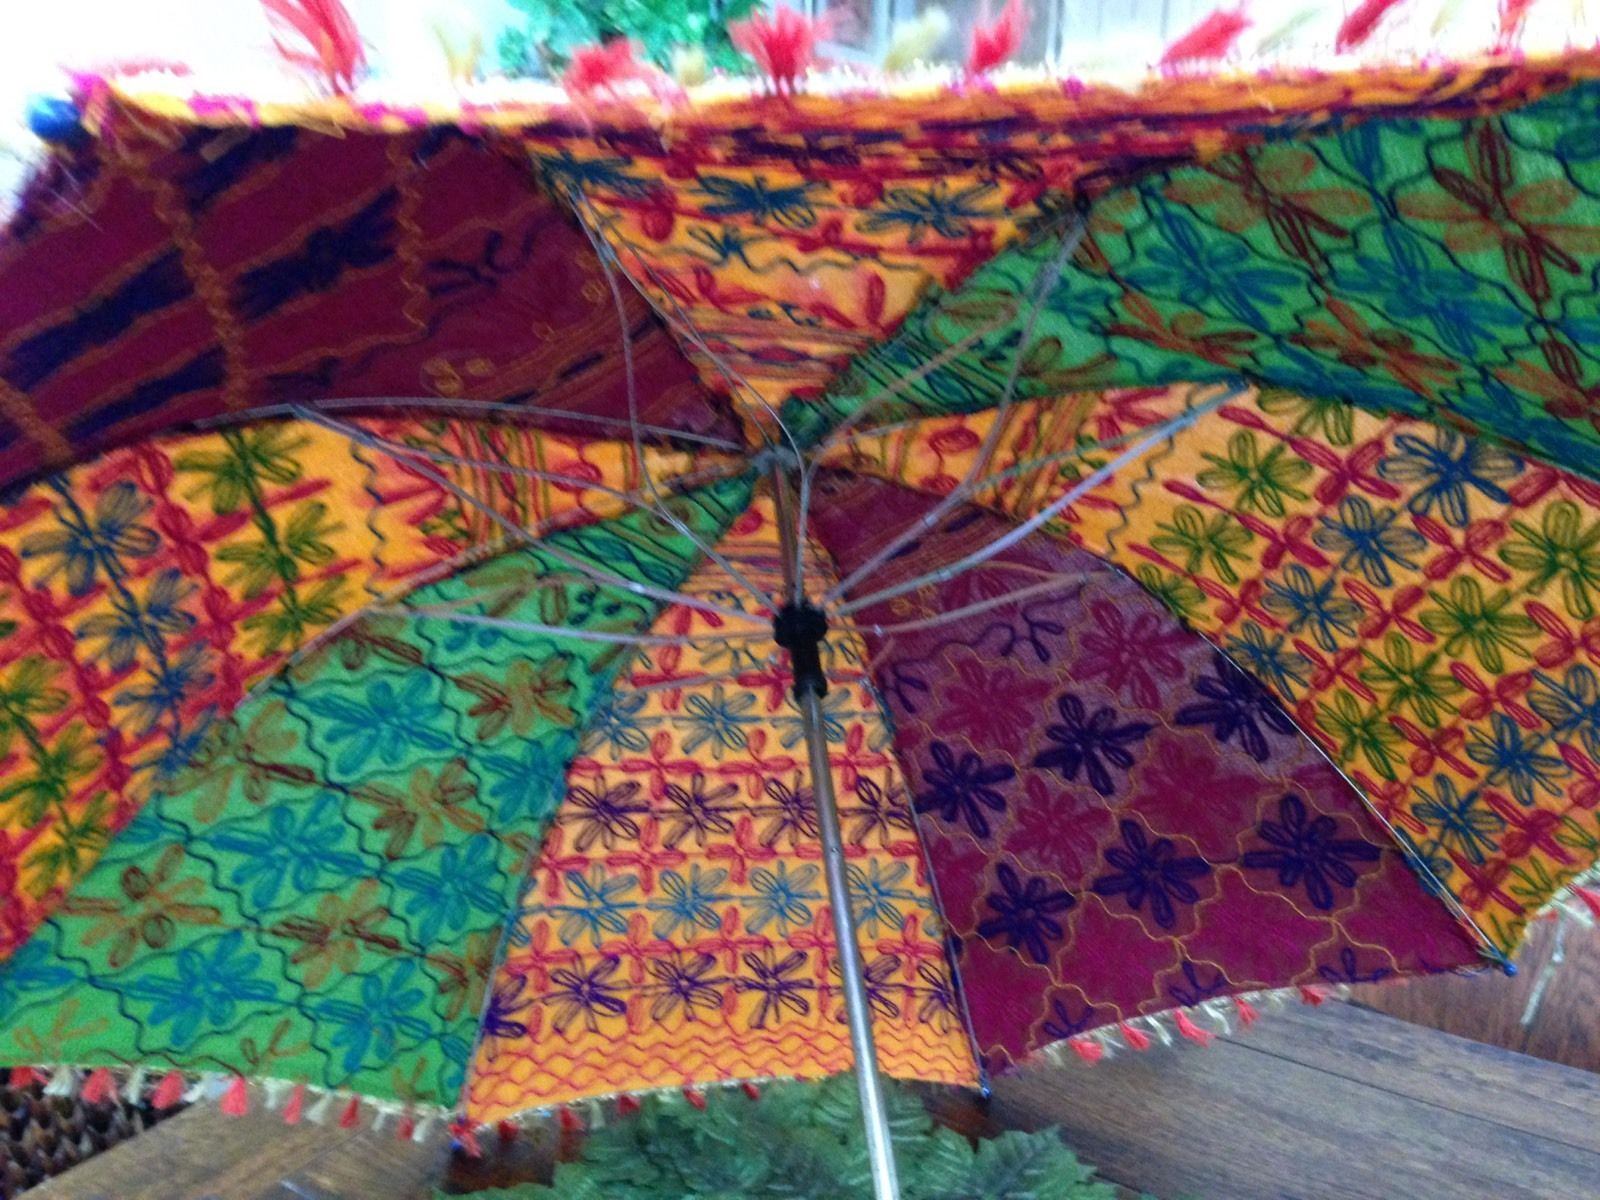 "Rare Unusual Colorful Sun Umbrella 36"" Across"